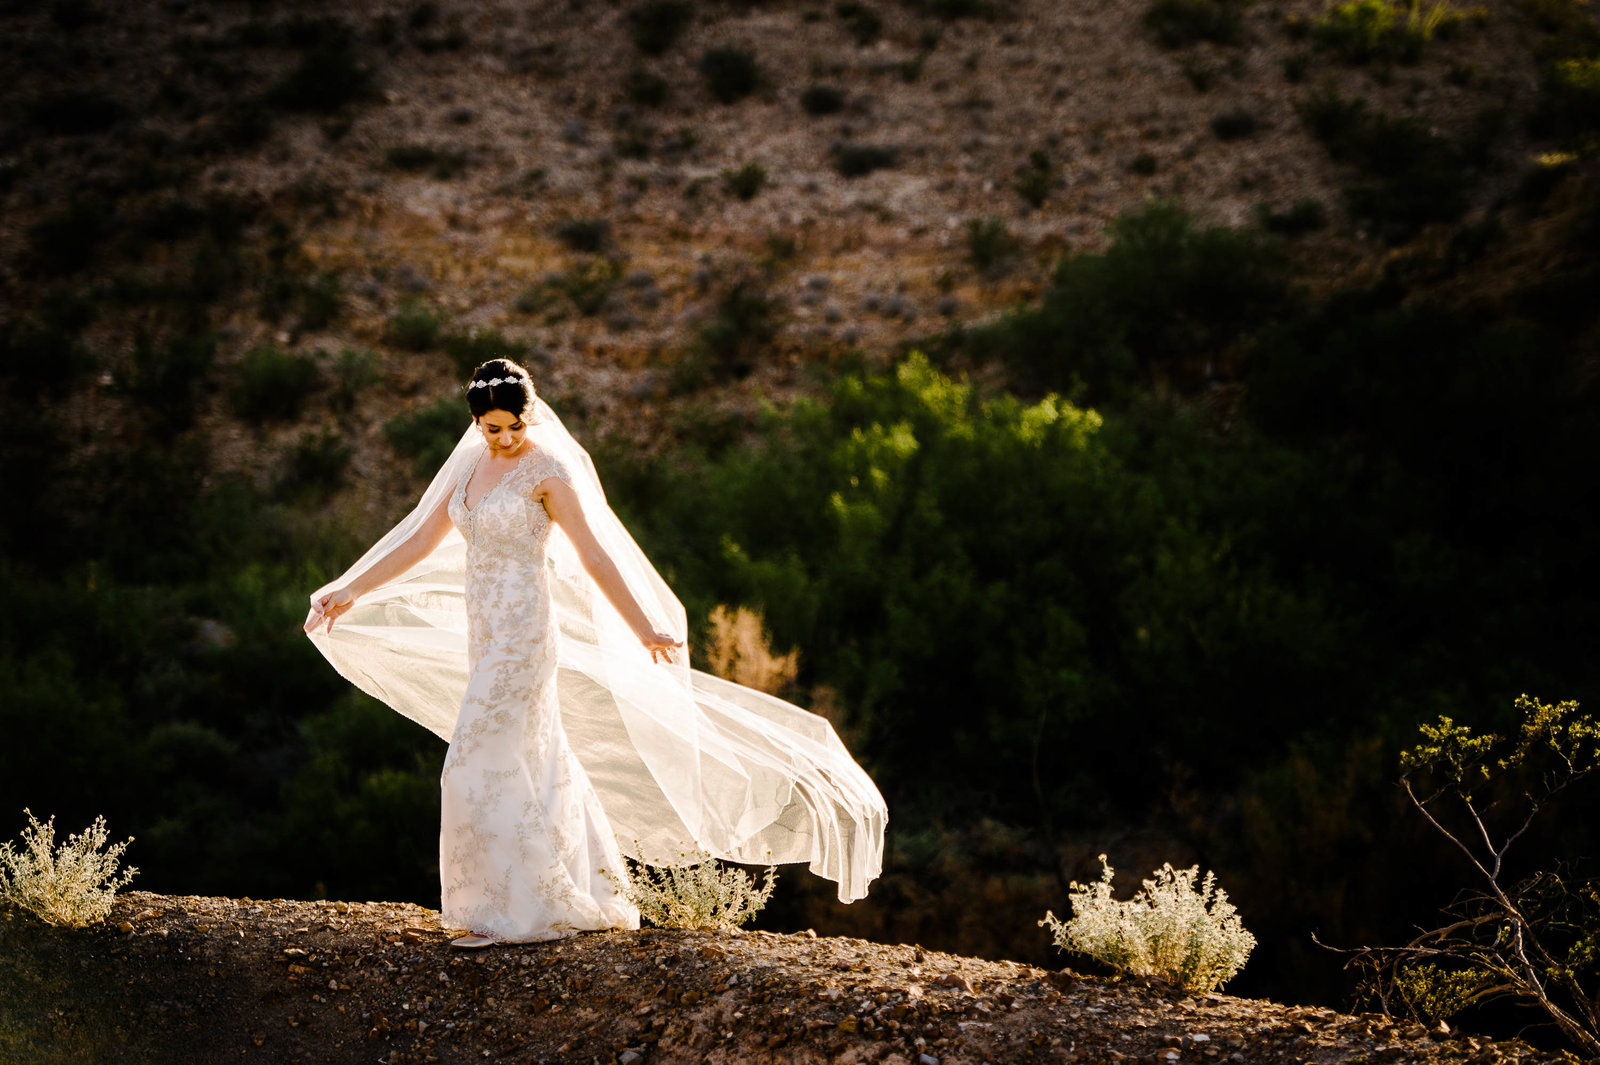 312-El-paso-wedding-photographer-AlKy_0399